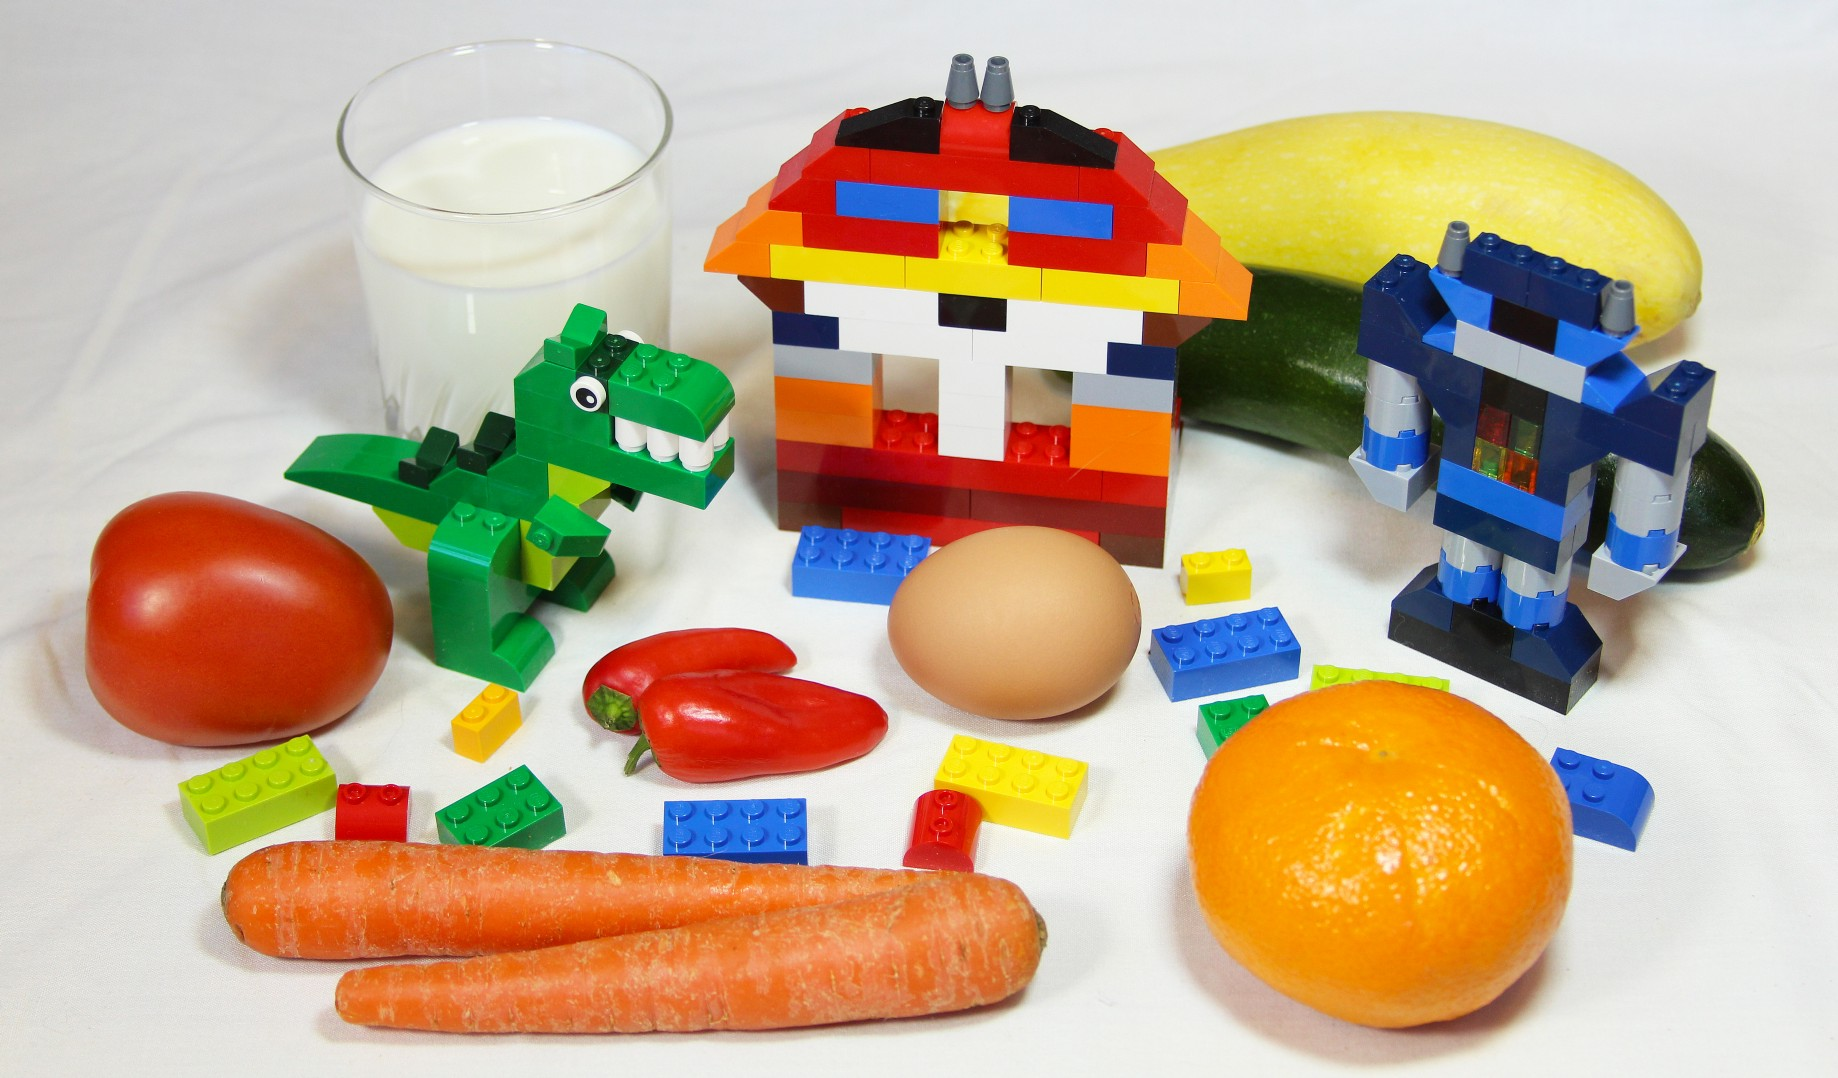 Digesting Food is Like Playing with Lego Blocks - The Philipendium